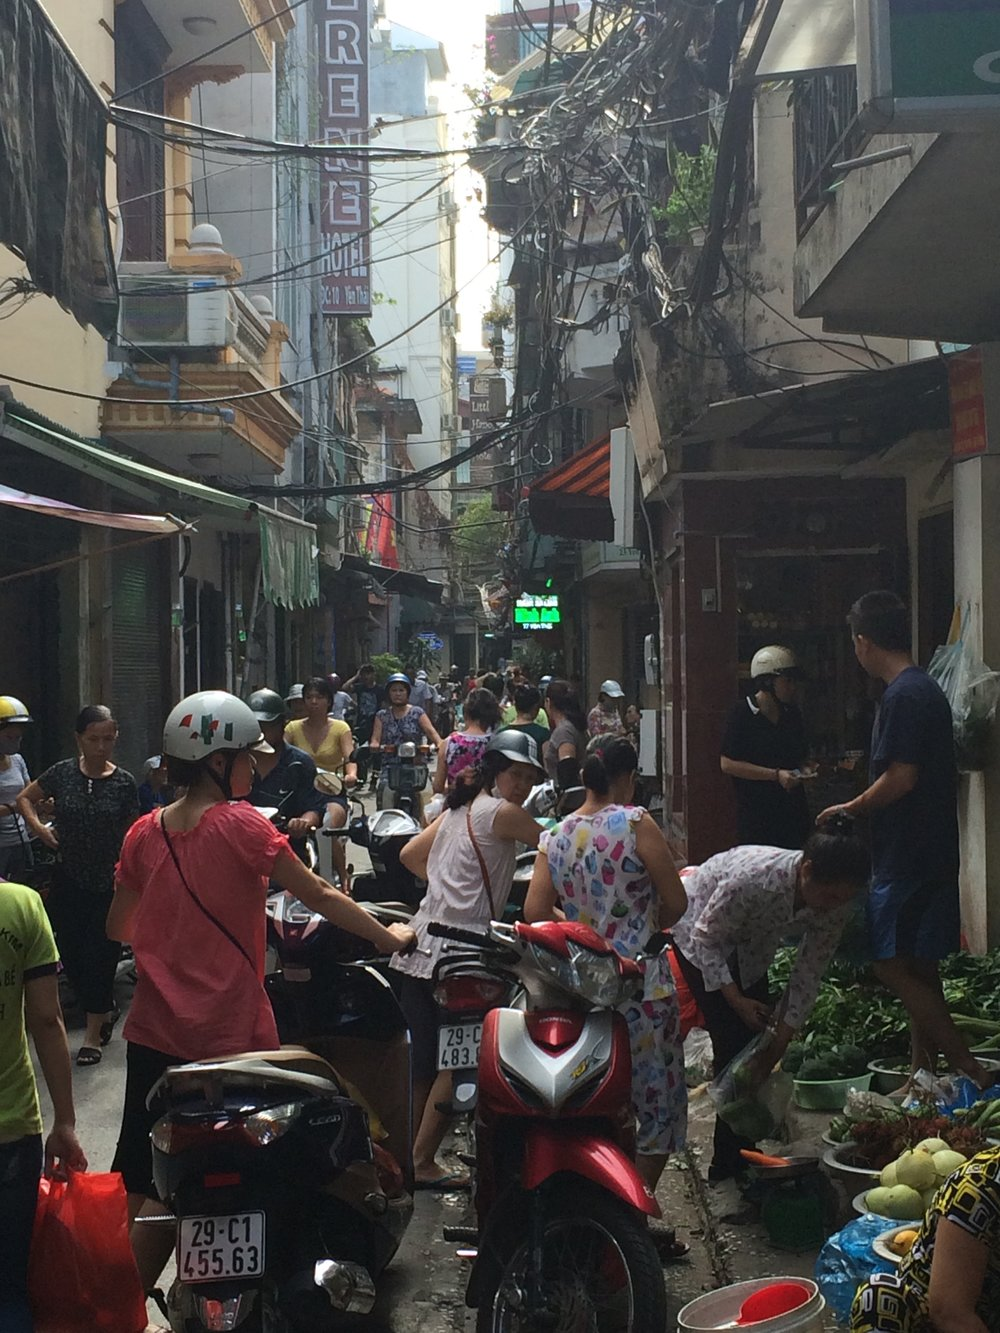 Market alley in Hanoi